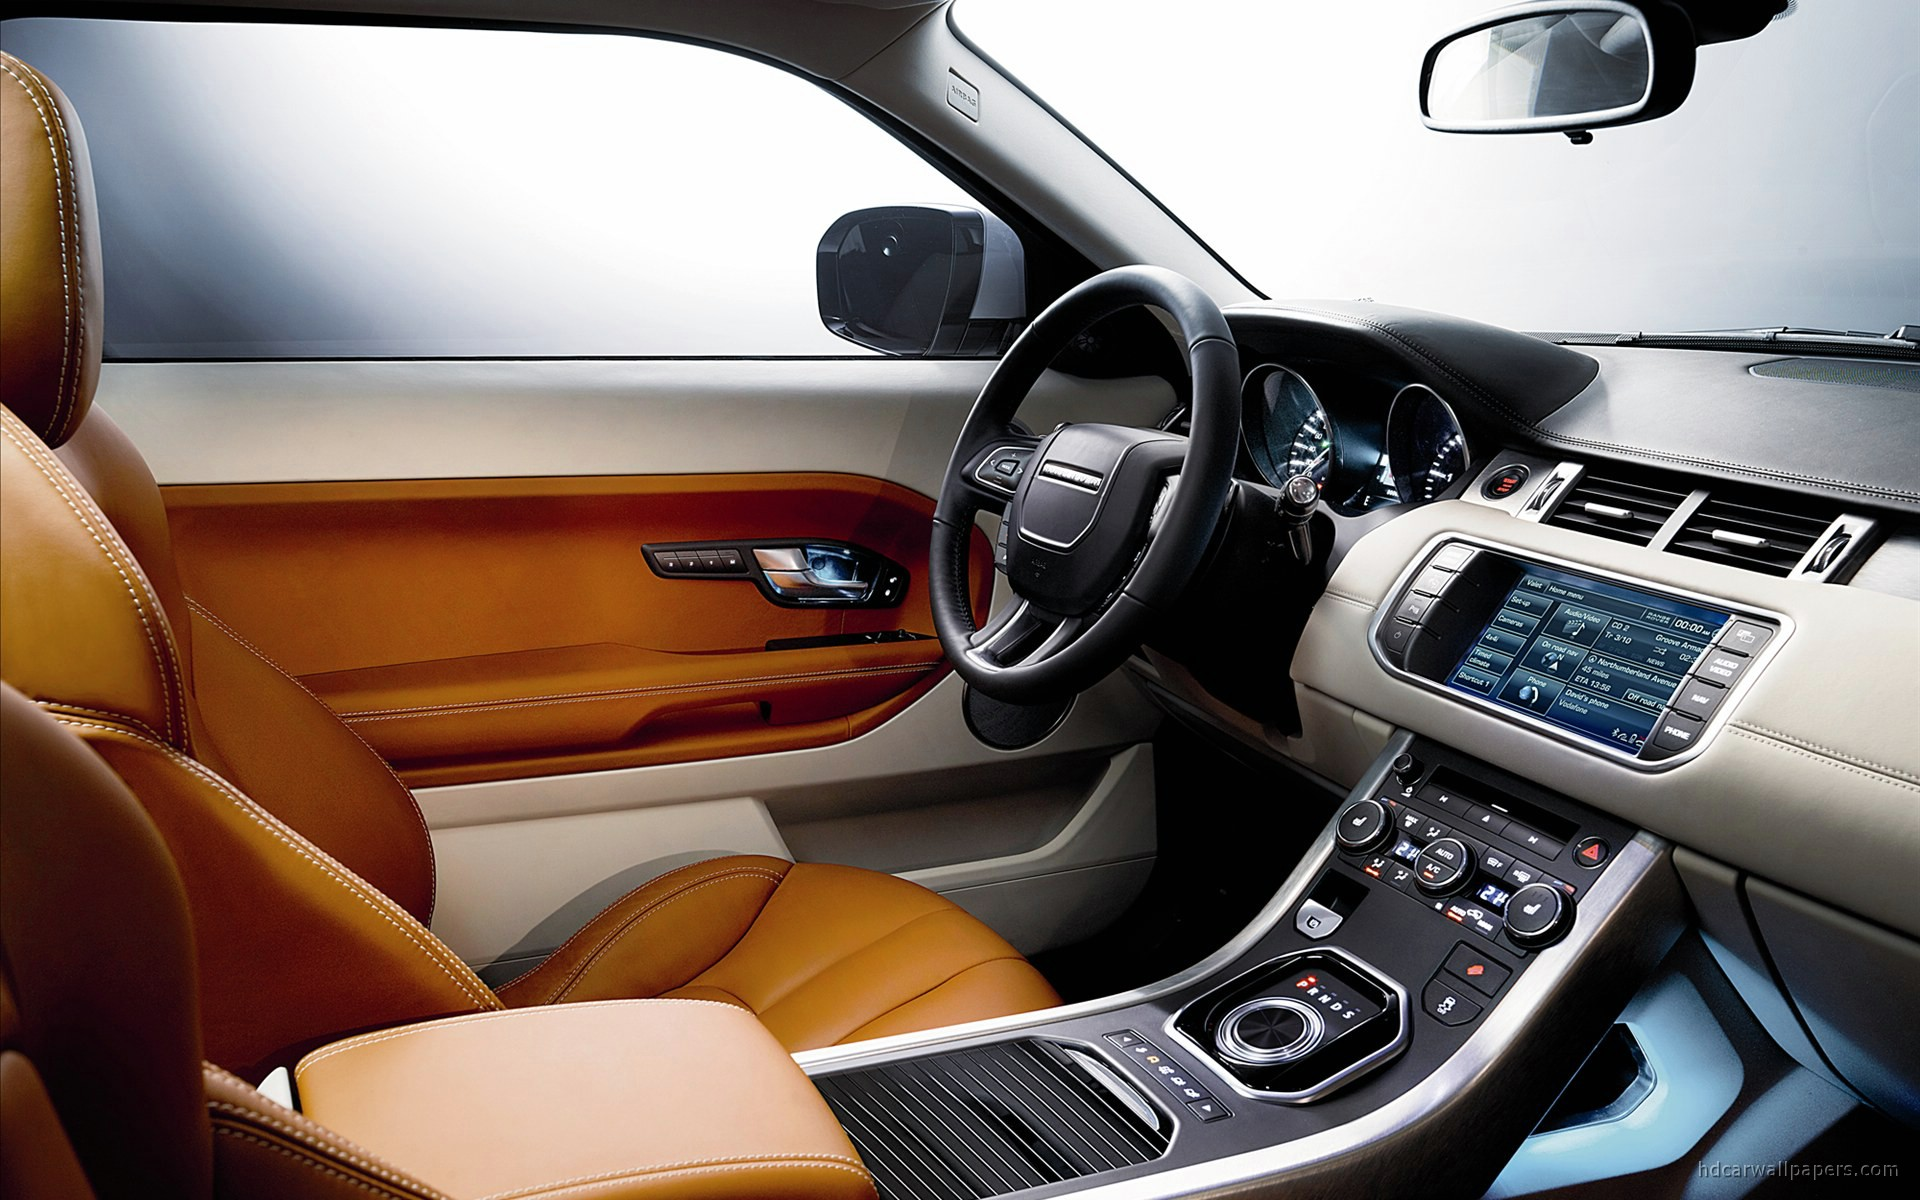 2011 range rover evoque interior wallpaper hd car wallpapers for Interieur voiture